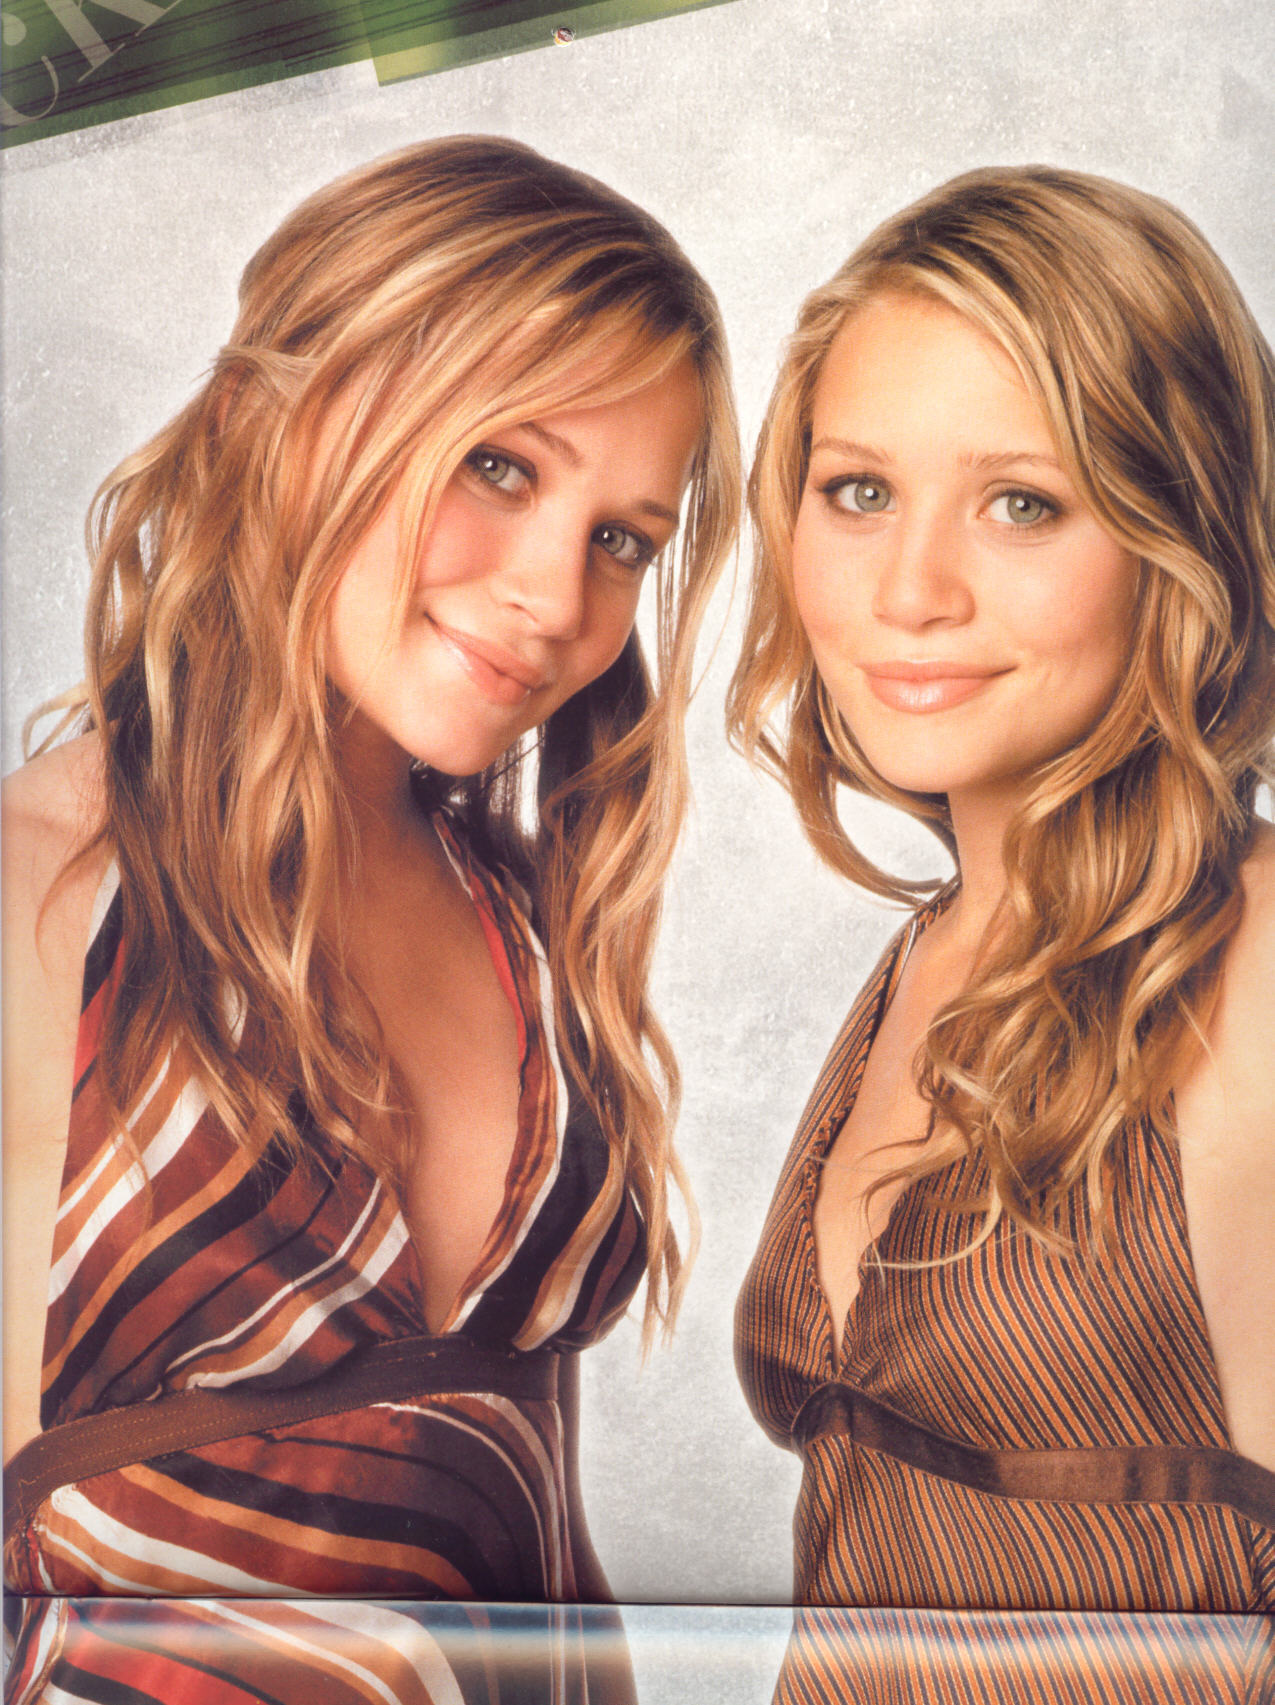 Mary kate and ashley olsen dating history 2